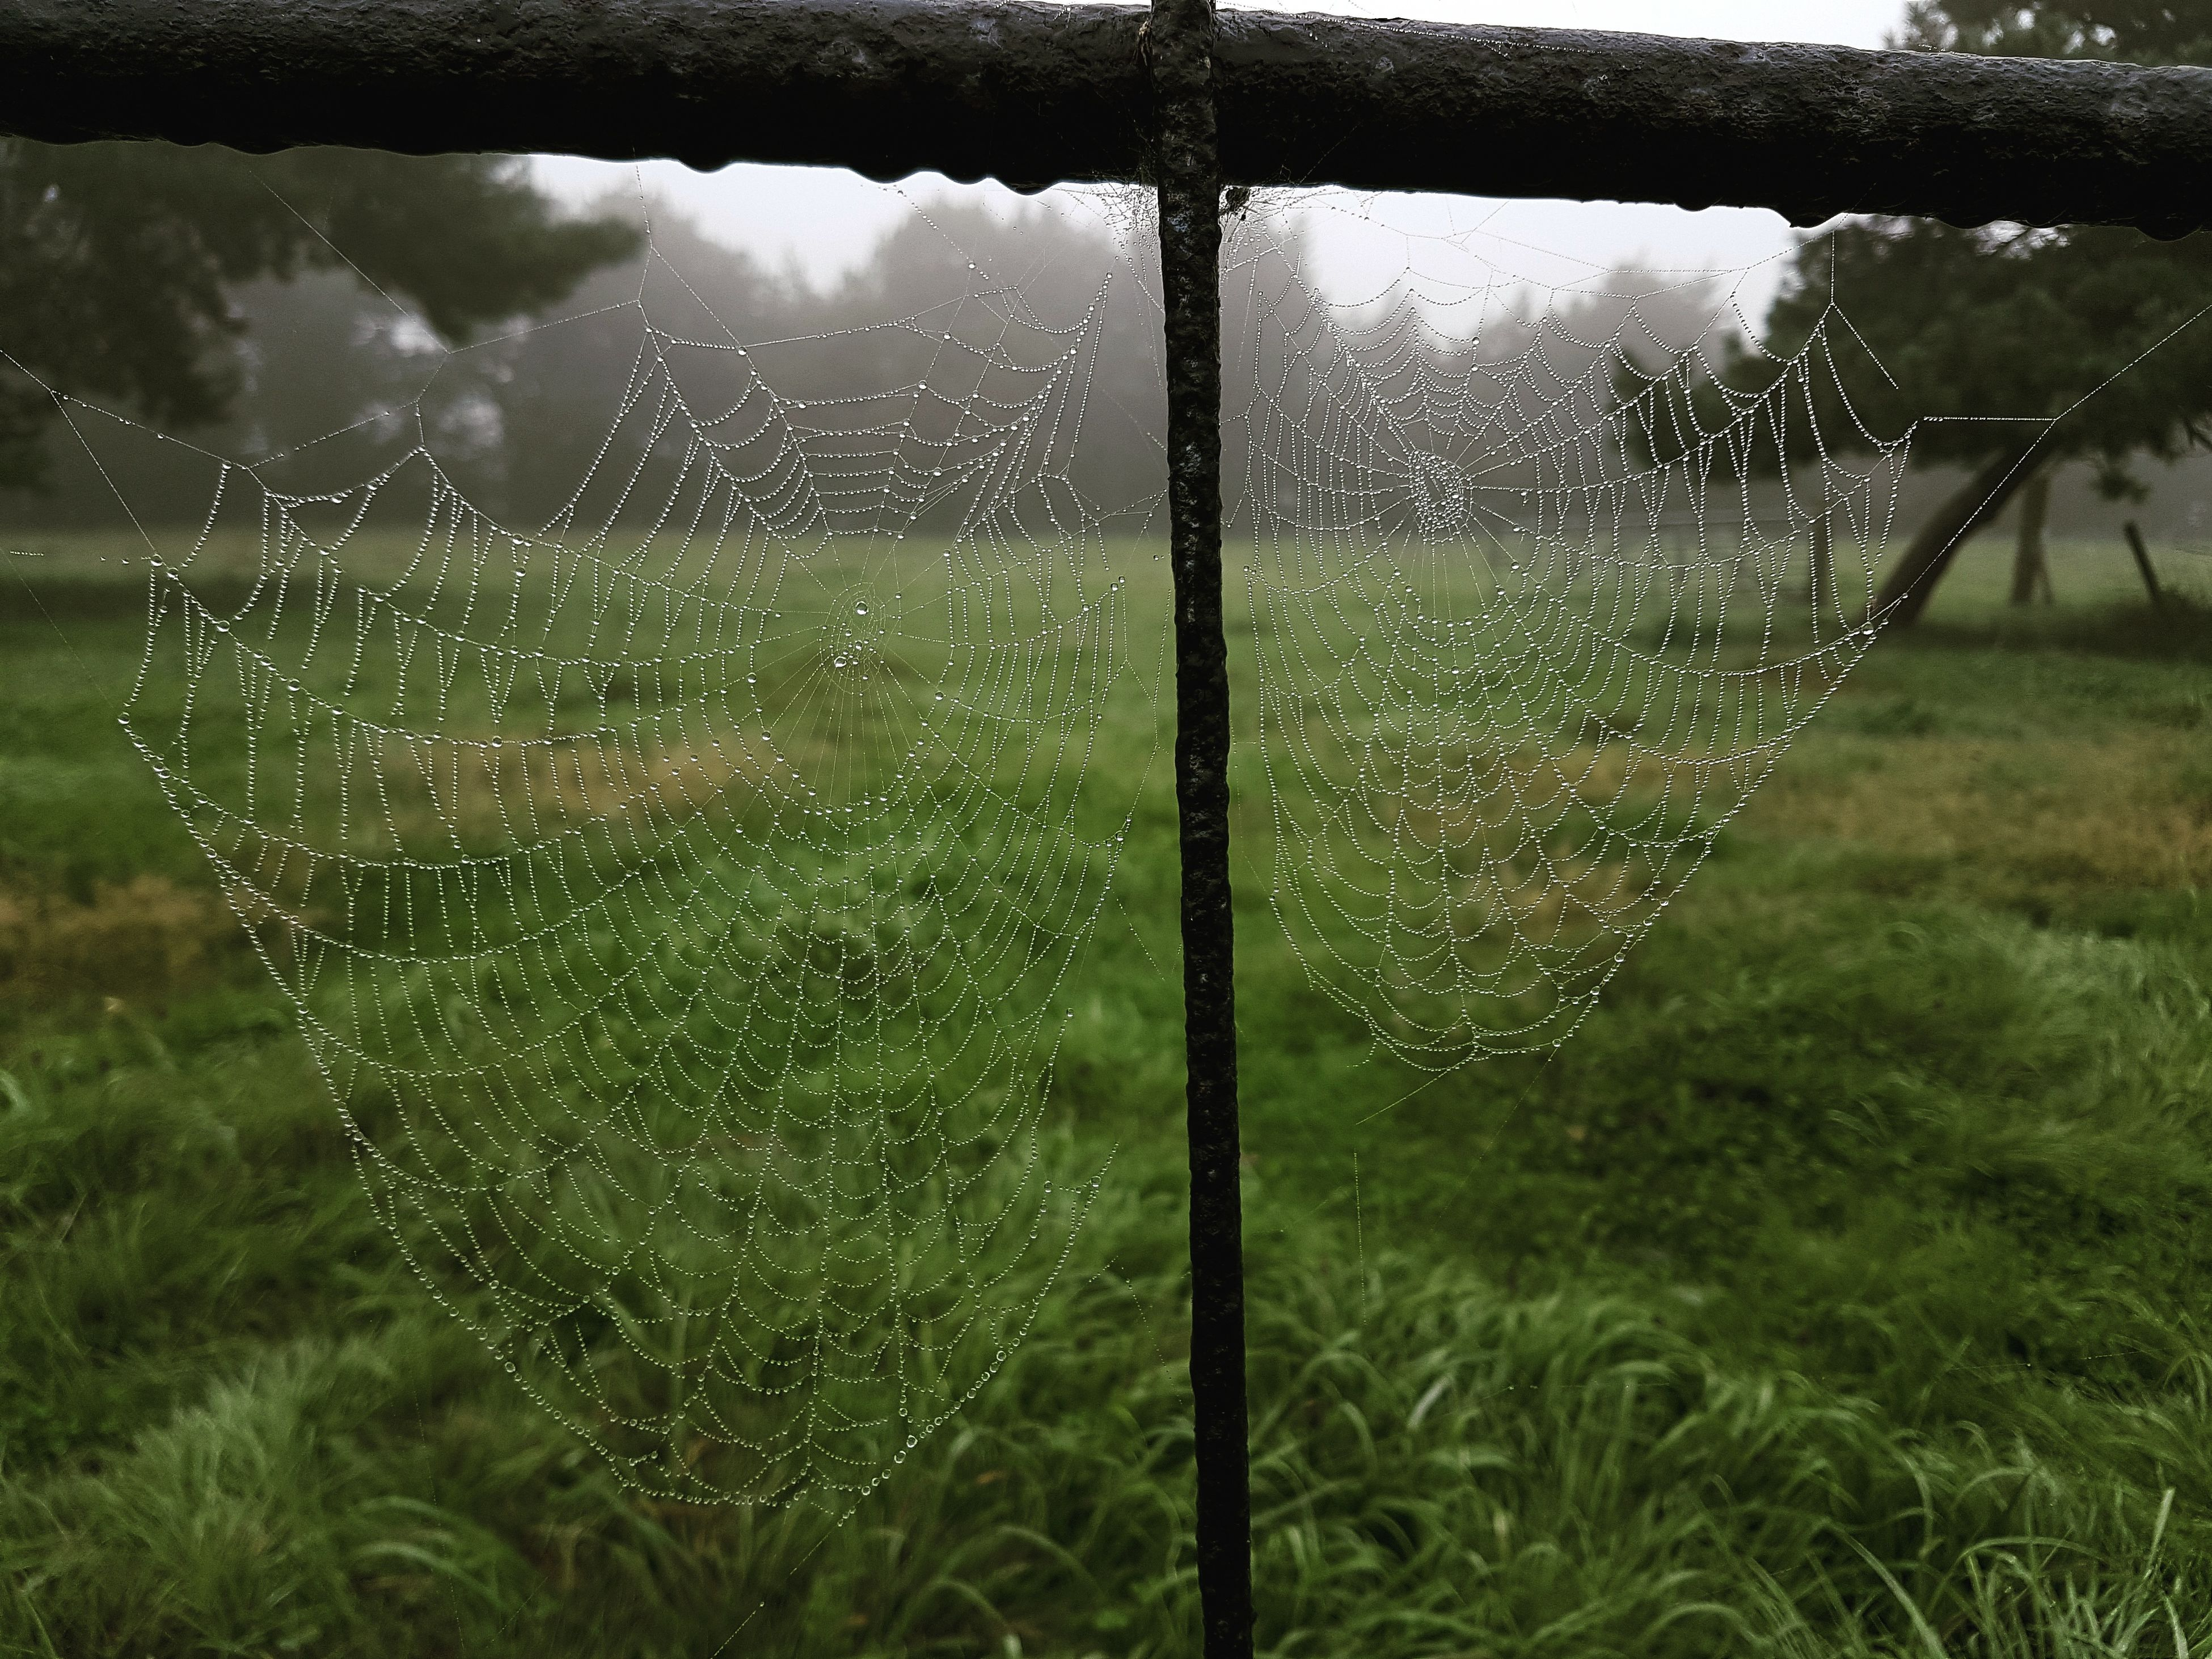 water, weather, wet, grass, close-up, drop, spider web, nature, fragility, green color, scenics, full frame, complexity, day, beauty in nature, tranquility, no people